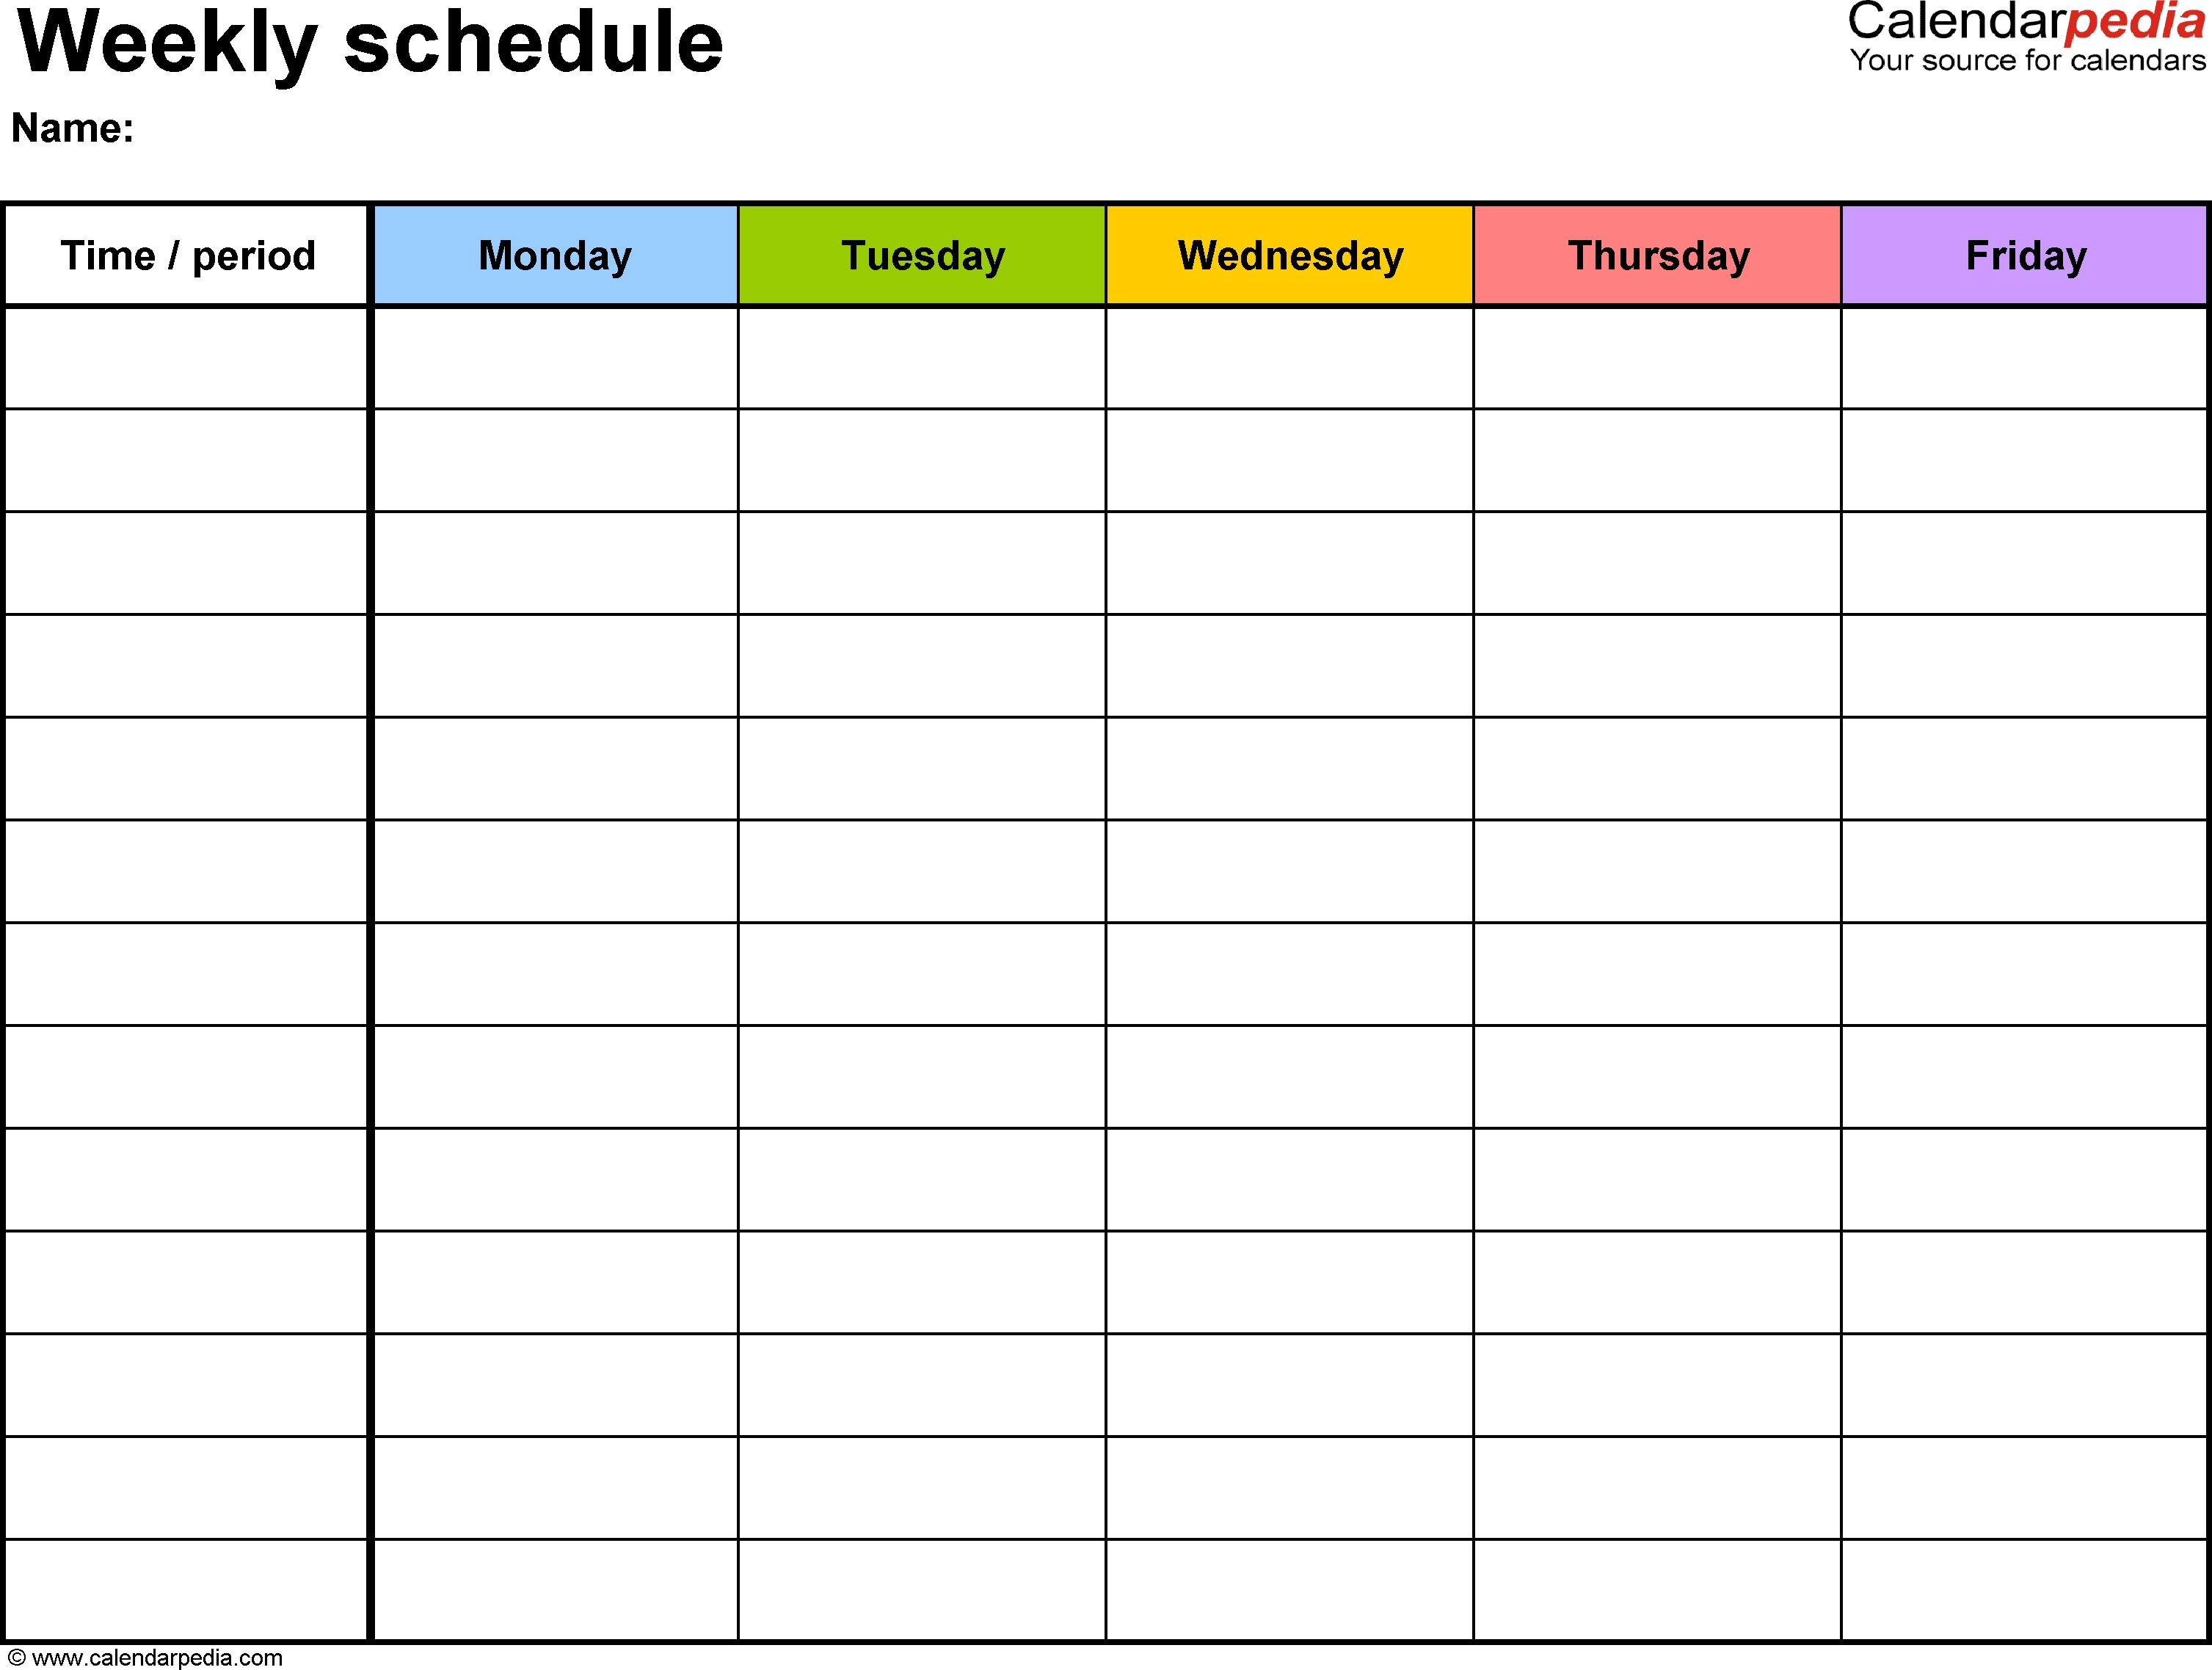 Free Weekly Schedule Templates For Word - 18 Templates-5 Day Blank Calendar